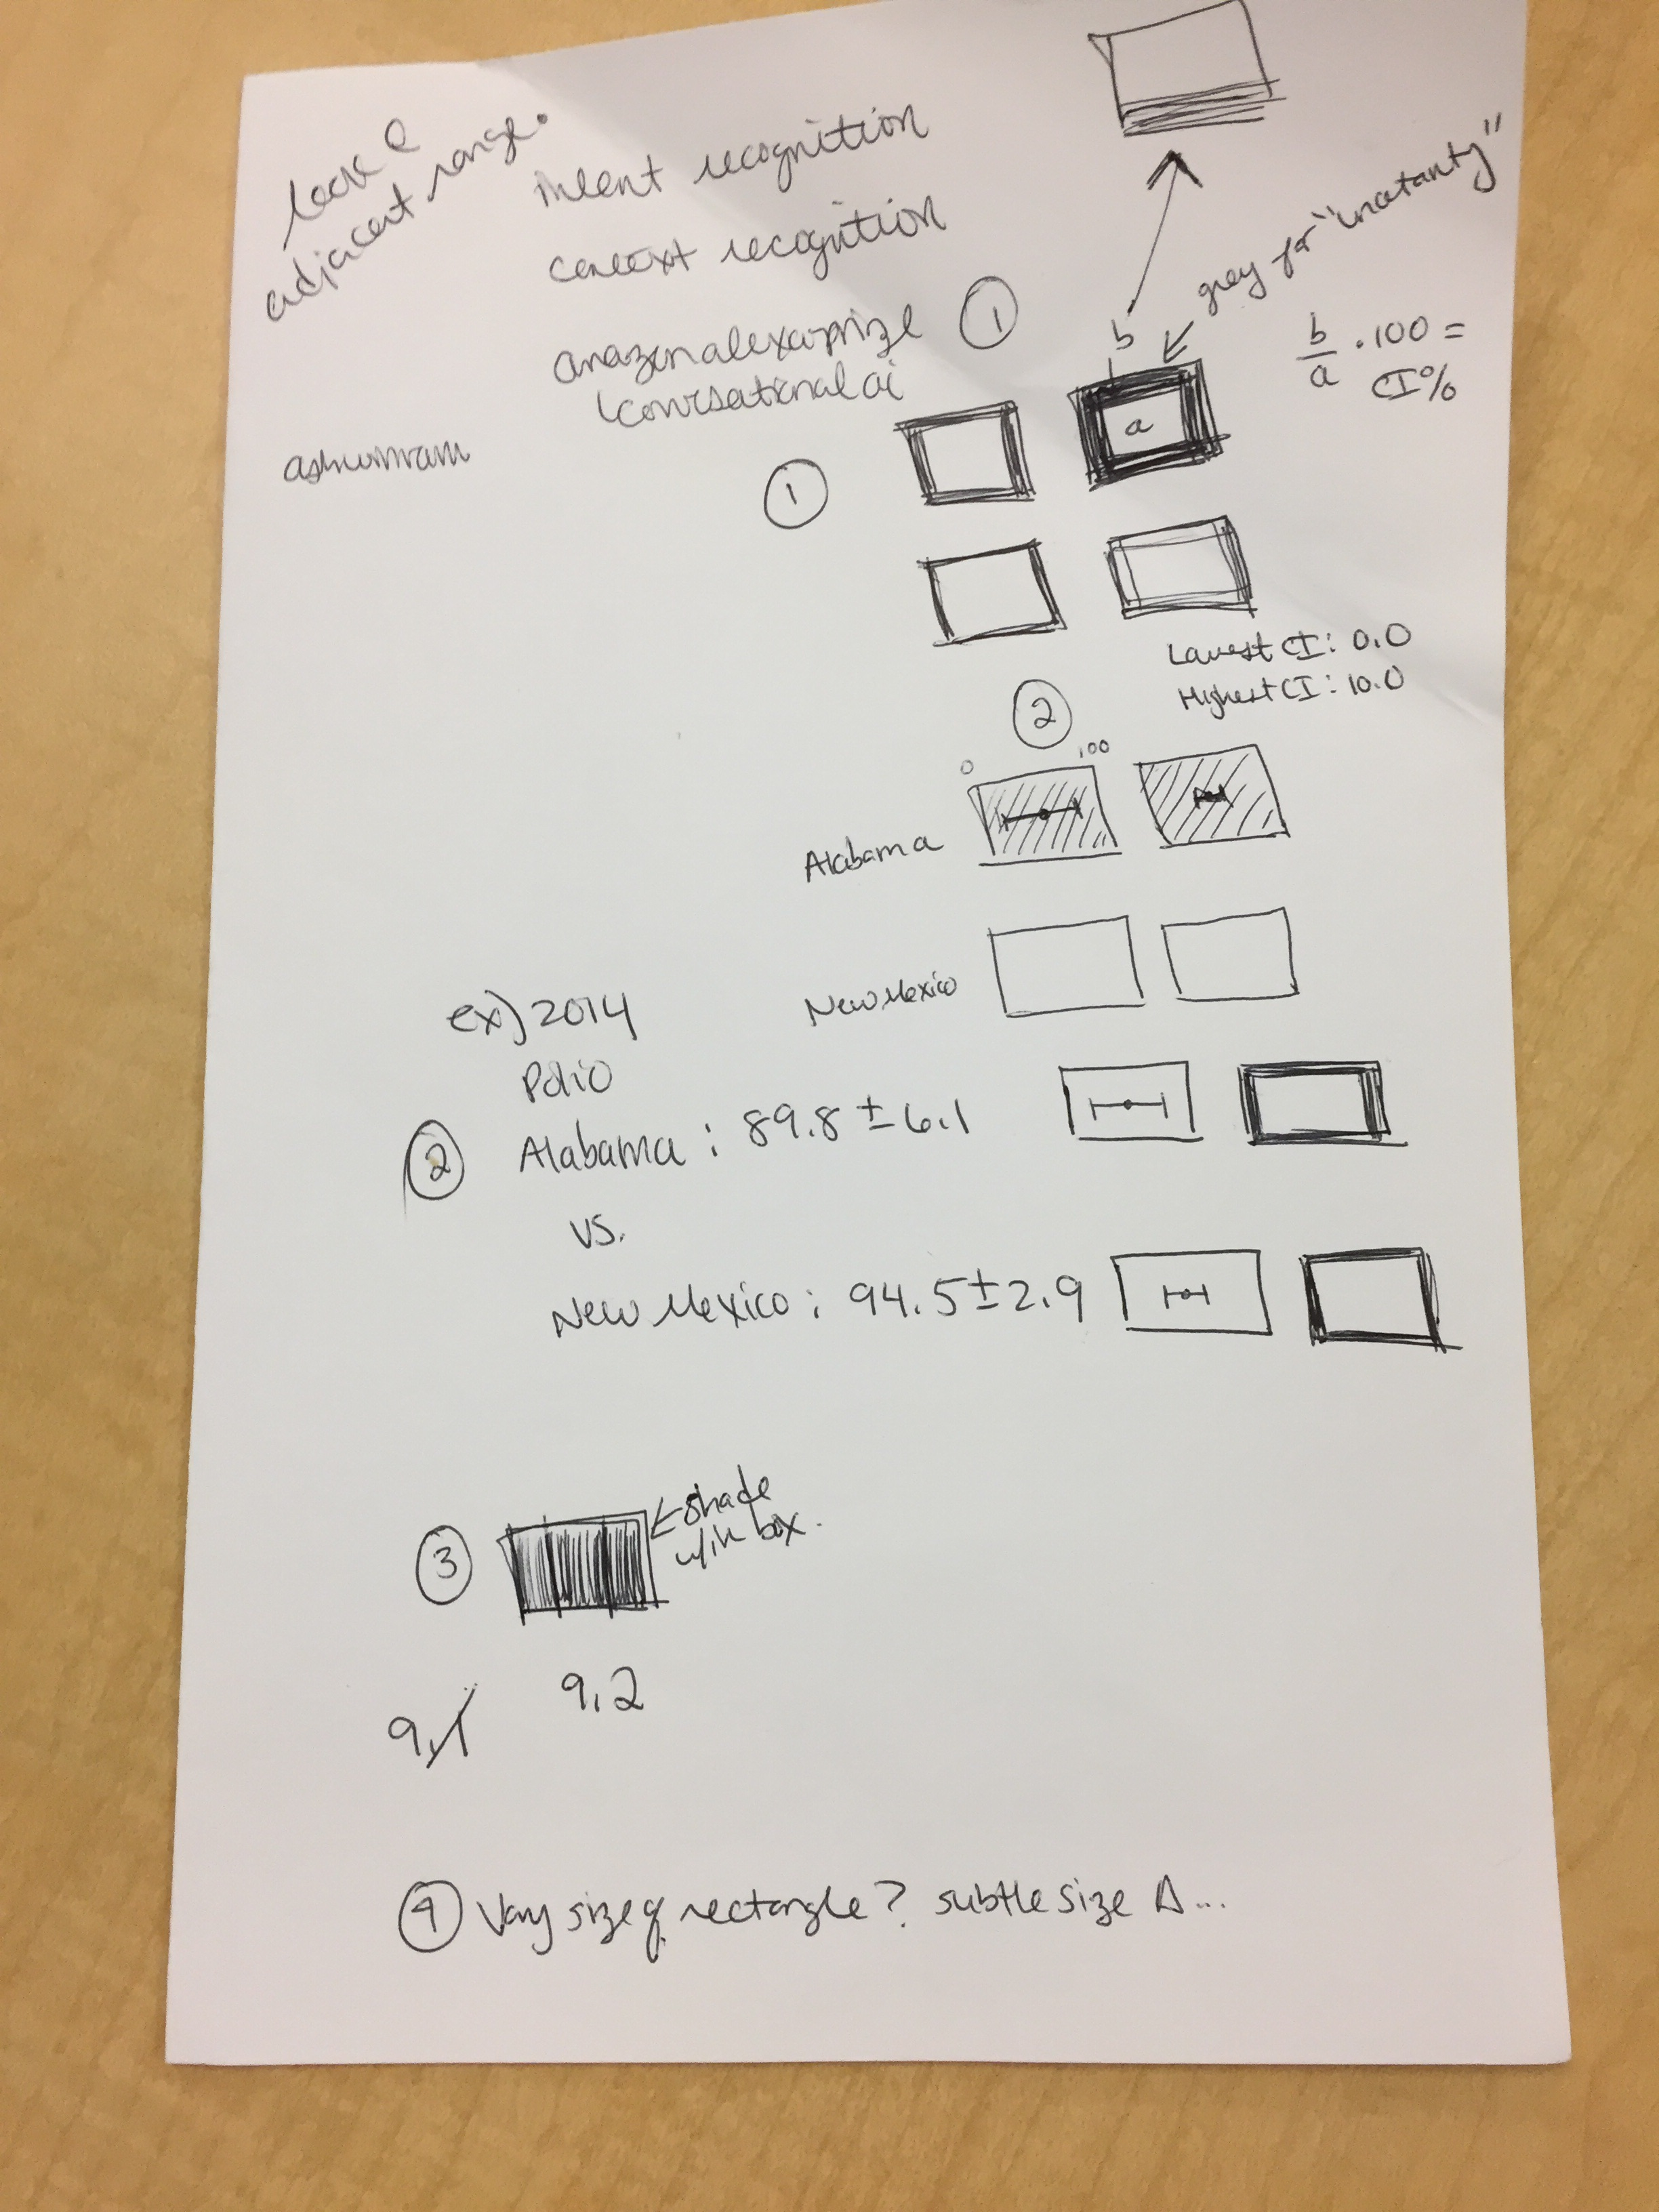 Preliminary sketches of how to visualize uncertainty in the data set.